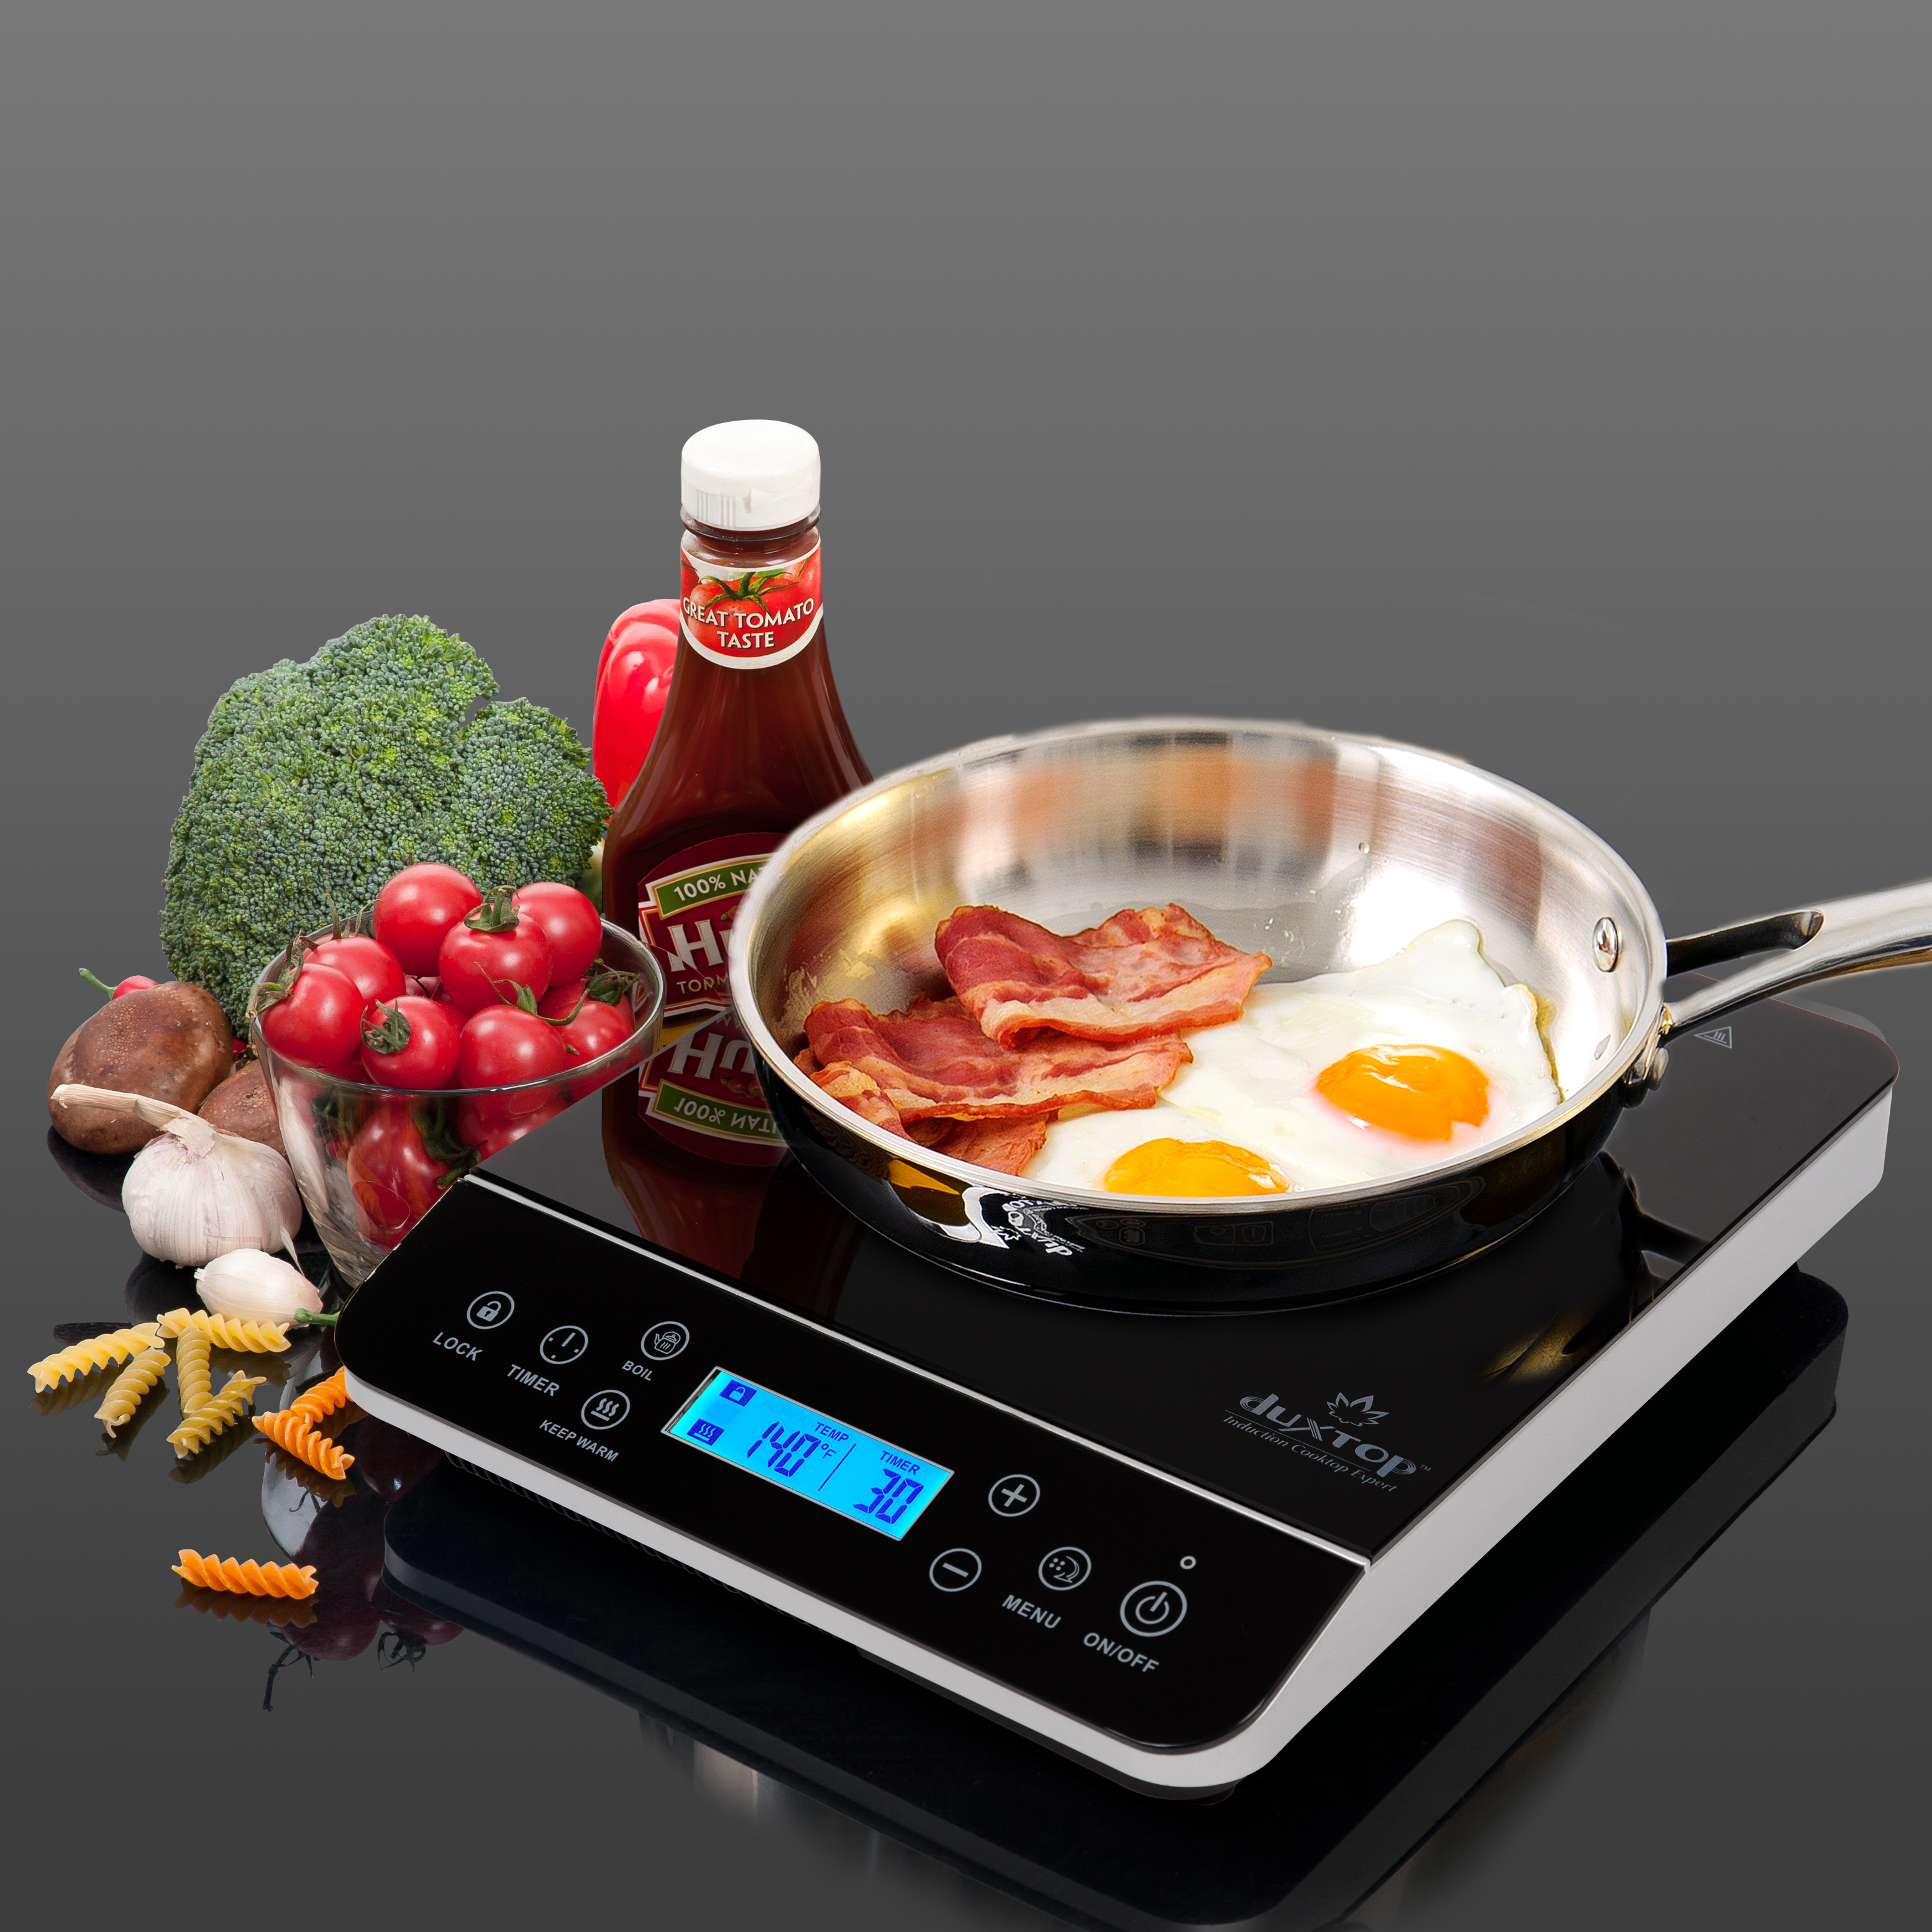 best induction cooktop 2018 portable burner reviews